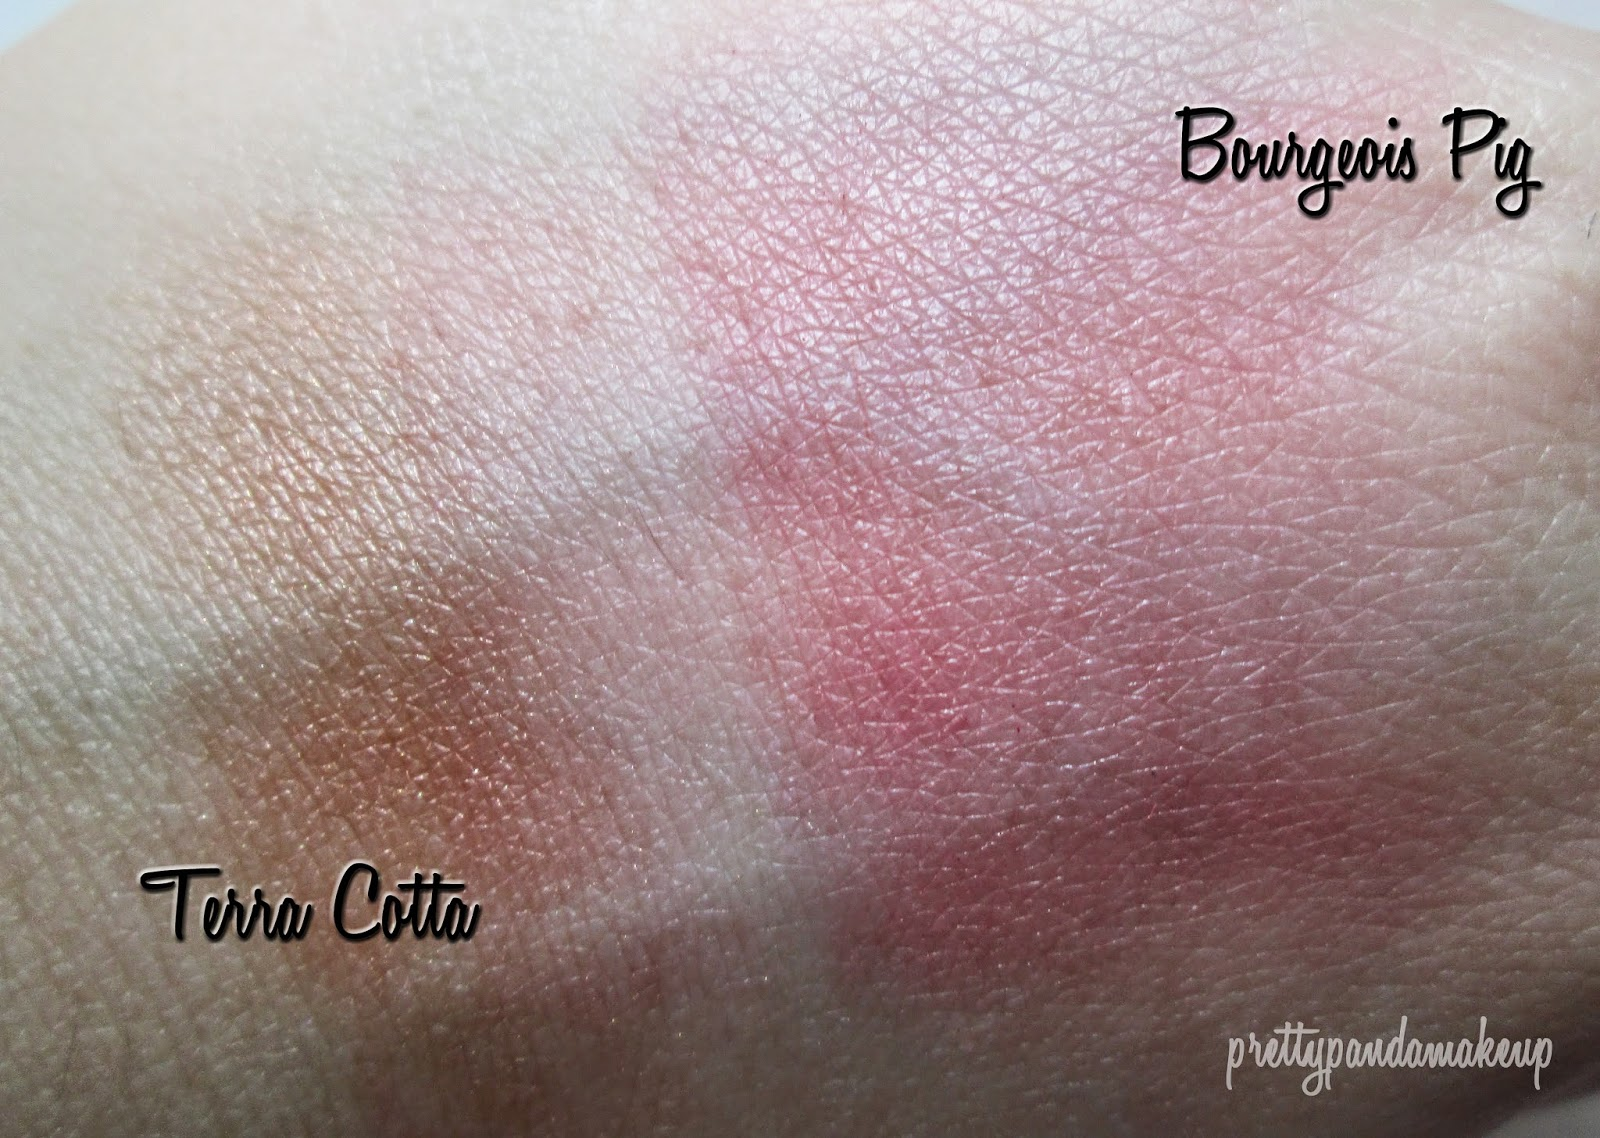 NYX Powder Blushes in Bourgeois Pig and Terra Cotta Swatches and Review